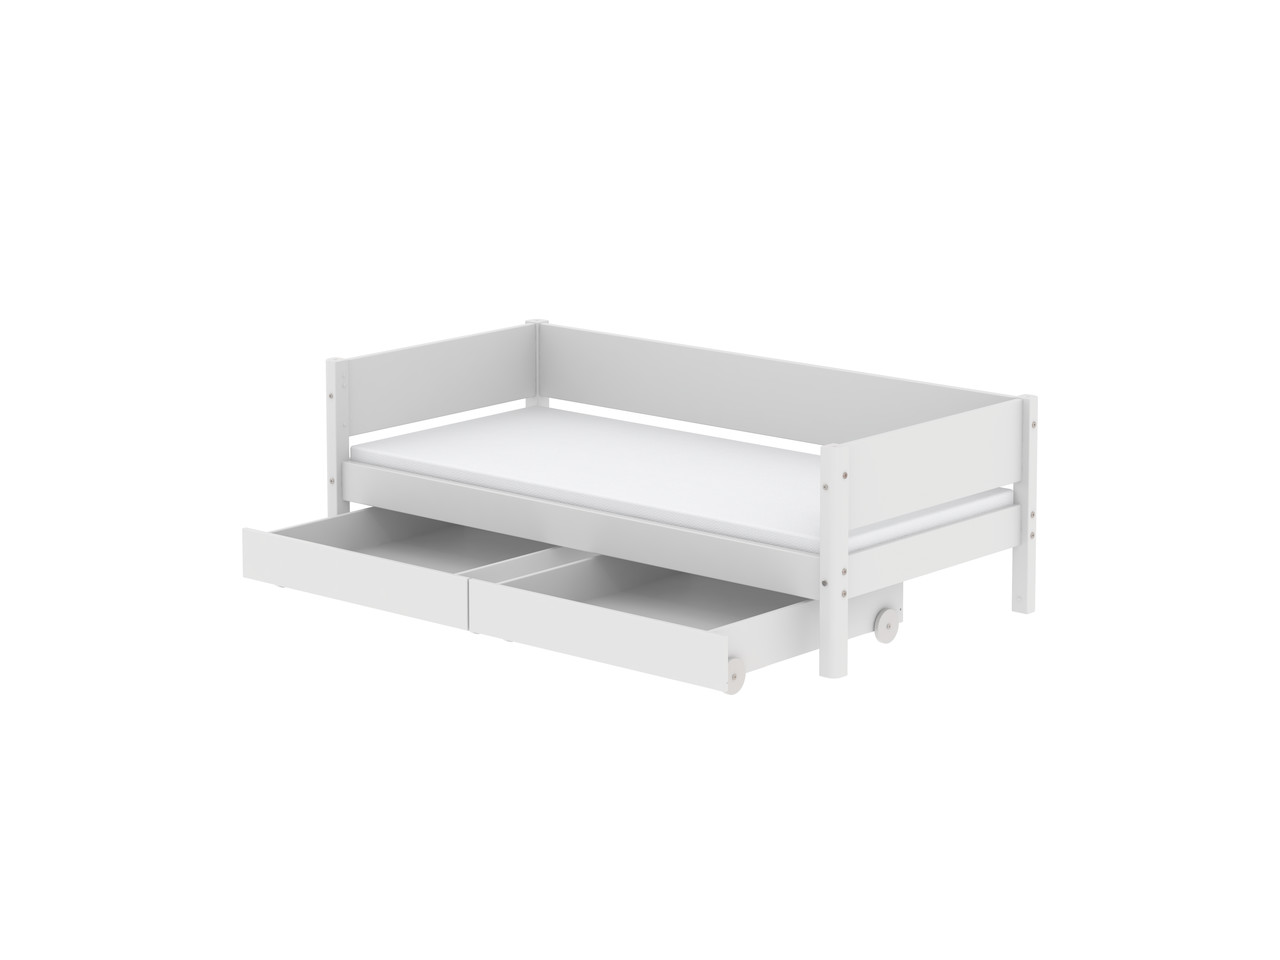 Single Bed With Storage Drawers Flexa White Single Bed With Drawers Rainbow Wood